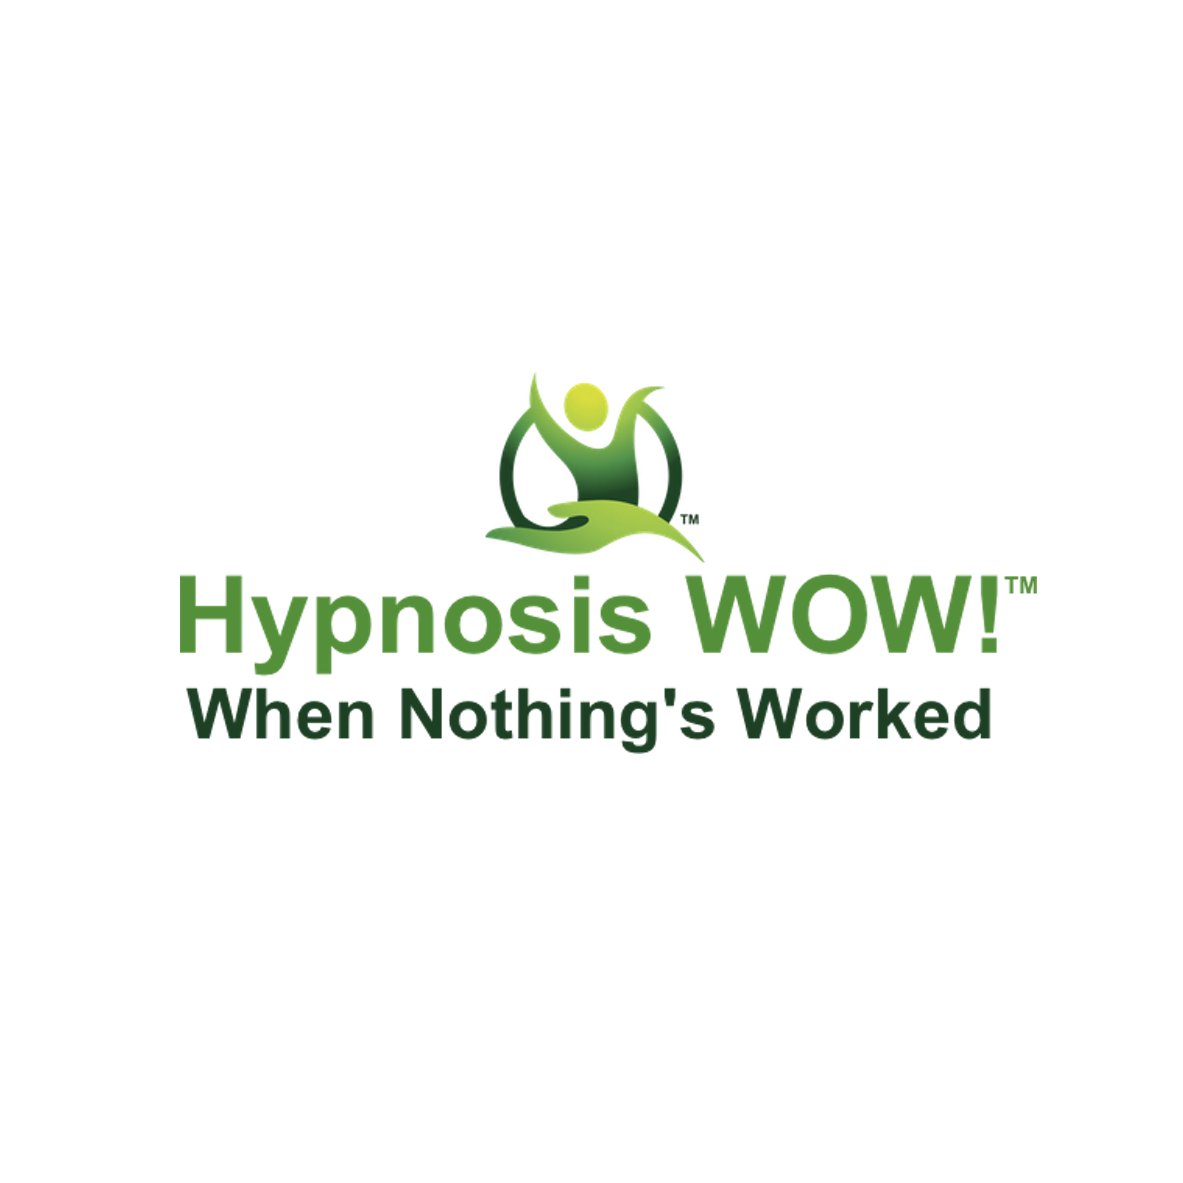 Hypnosis WOW! - Utah's Family Hypnotherapy Clinic